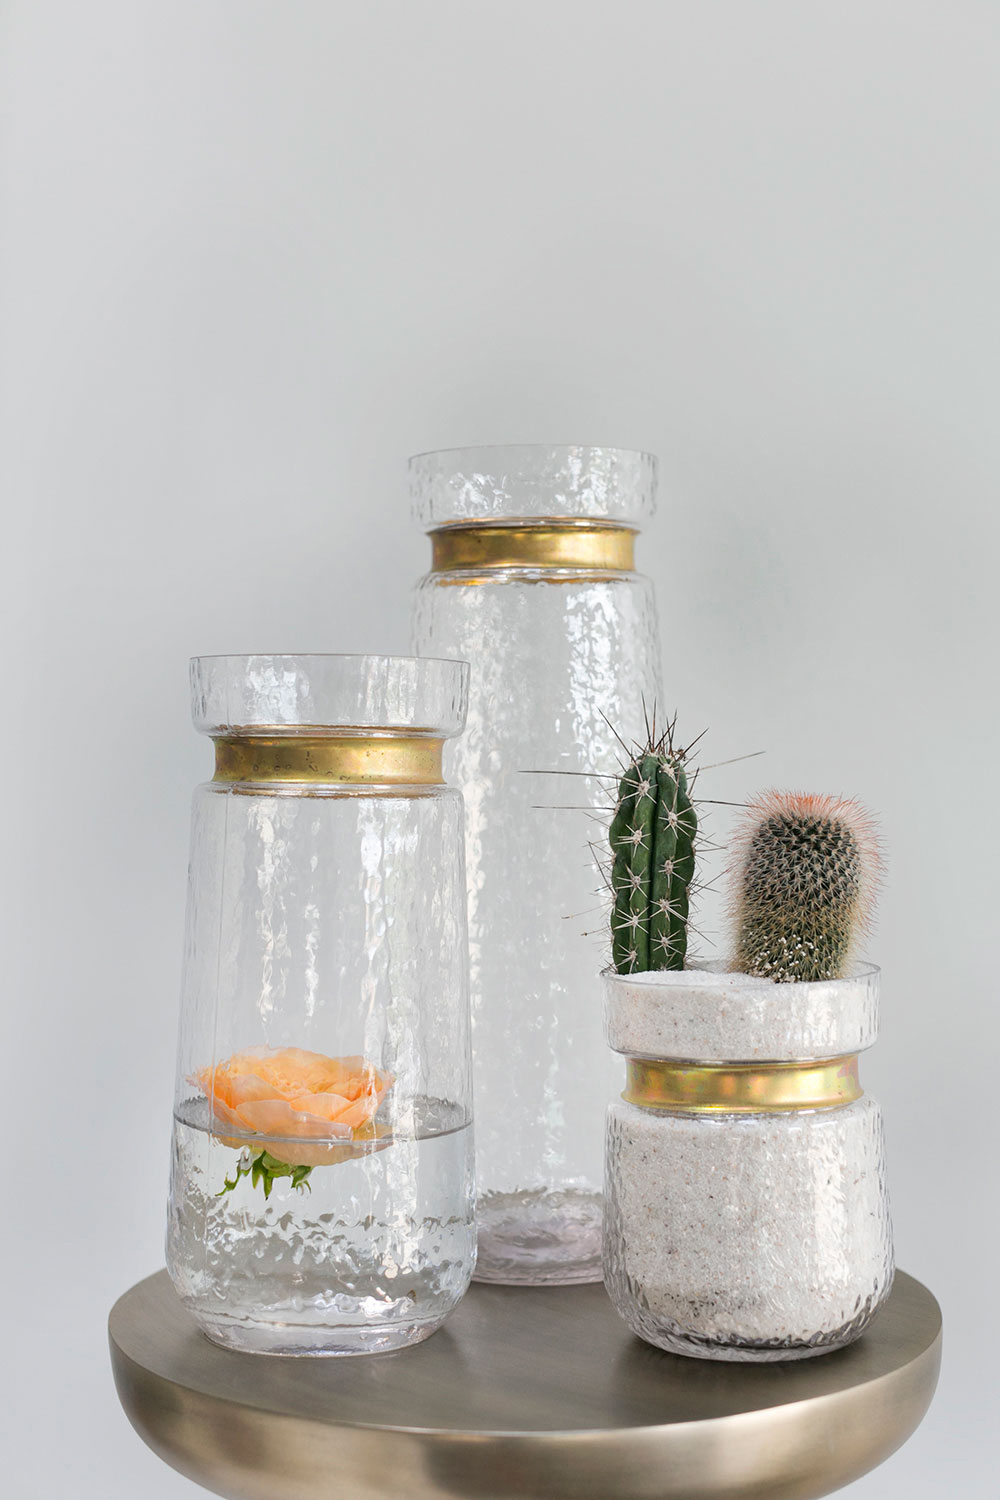 Jasmine Vase - Mouth blown clear glass vase with a cinched neck and a rich gold metal rim. Perfect for a simple centerpiece or a live succulent.